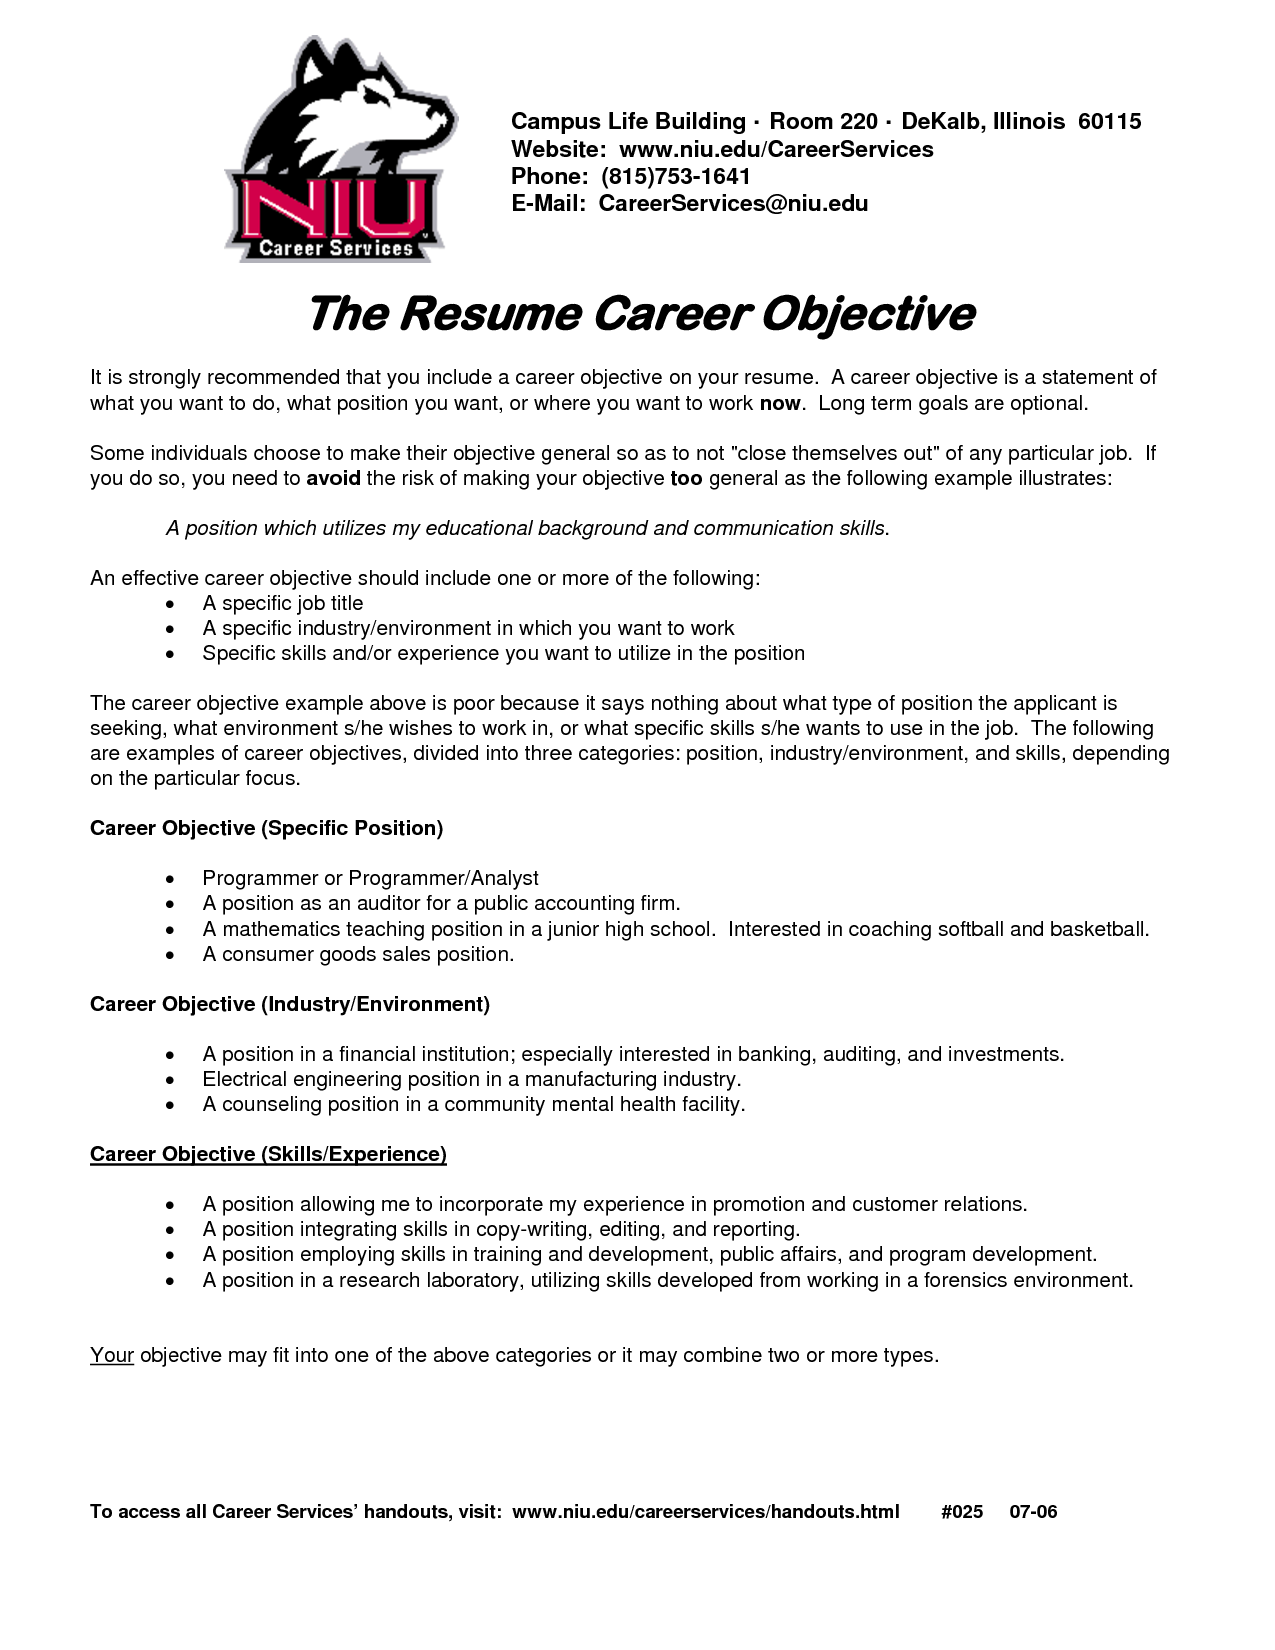 Generator Test Engineer Sample Resume Httpswwwgooglesearchqobjective Resume  Resume